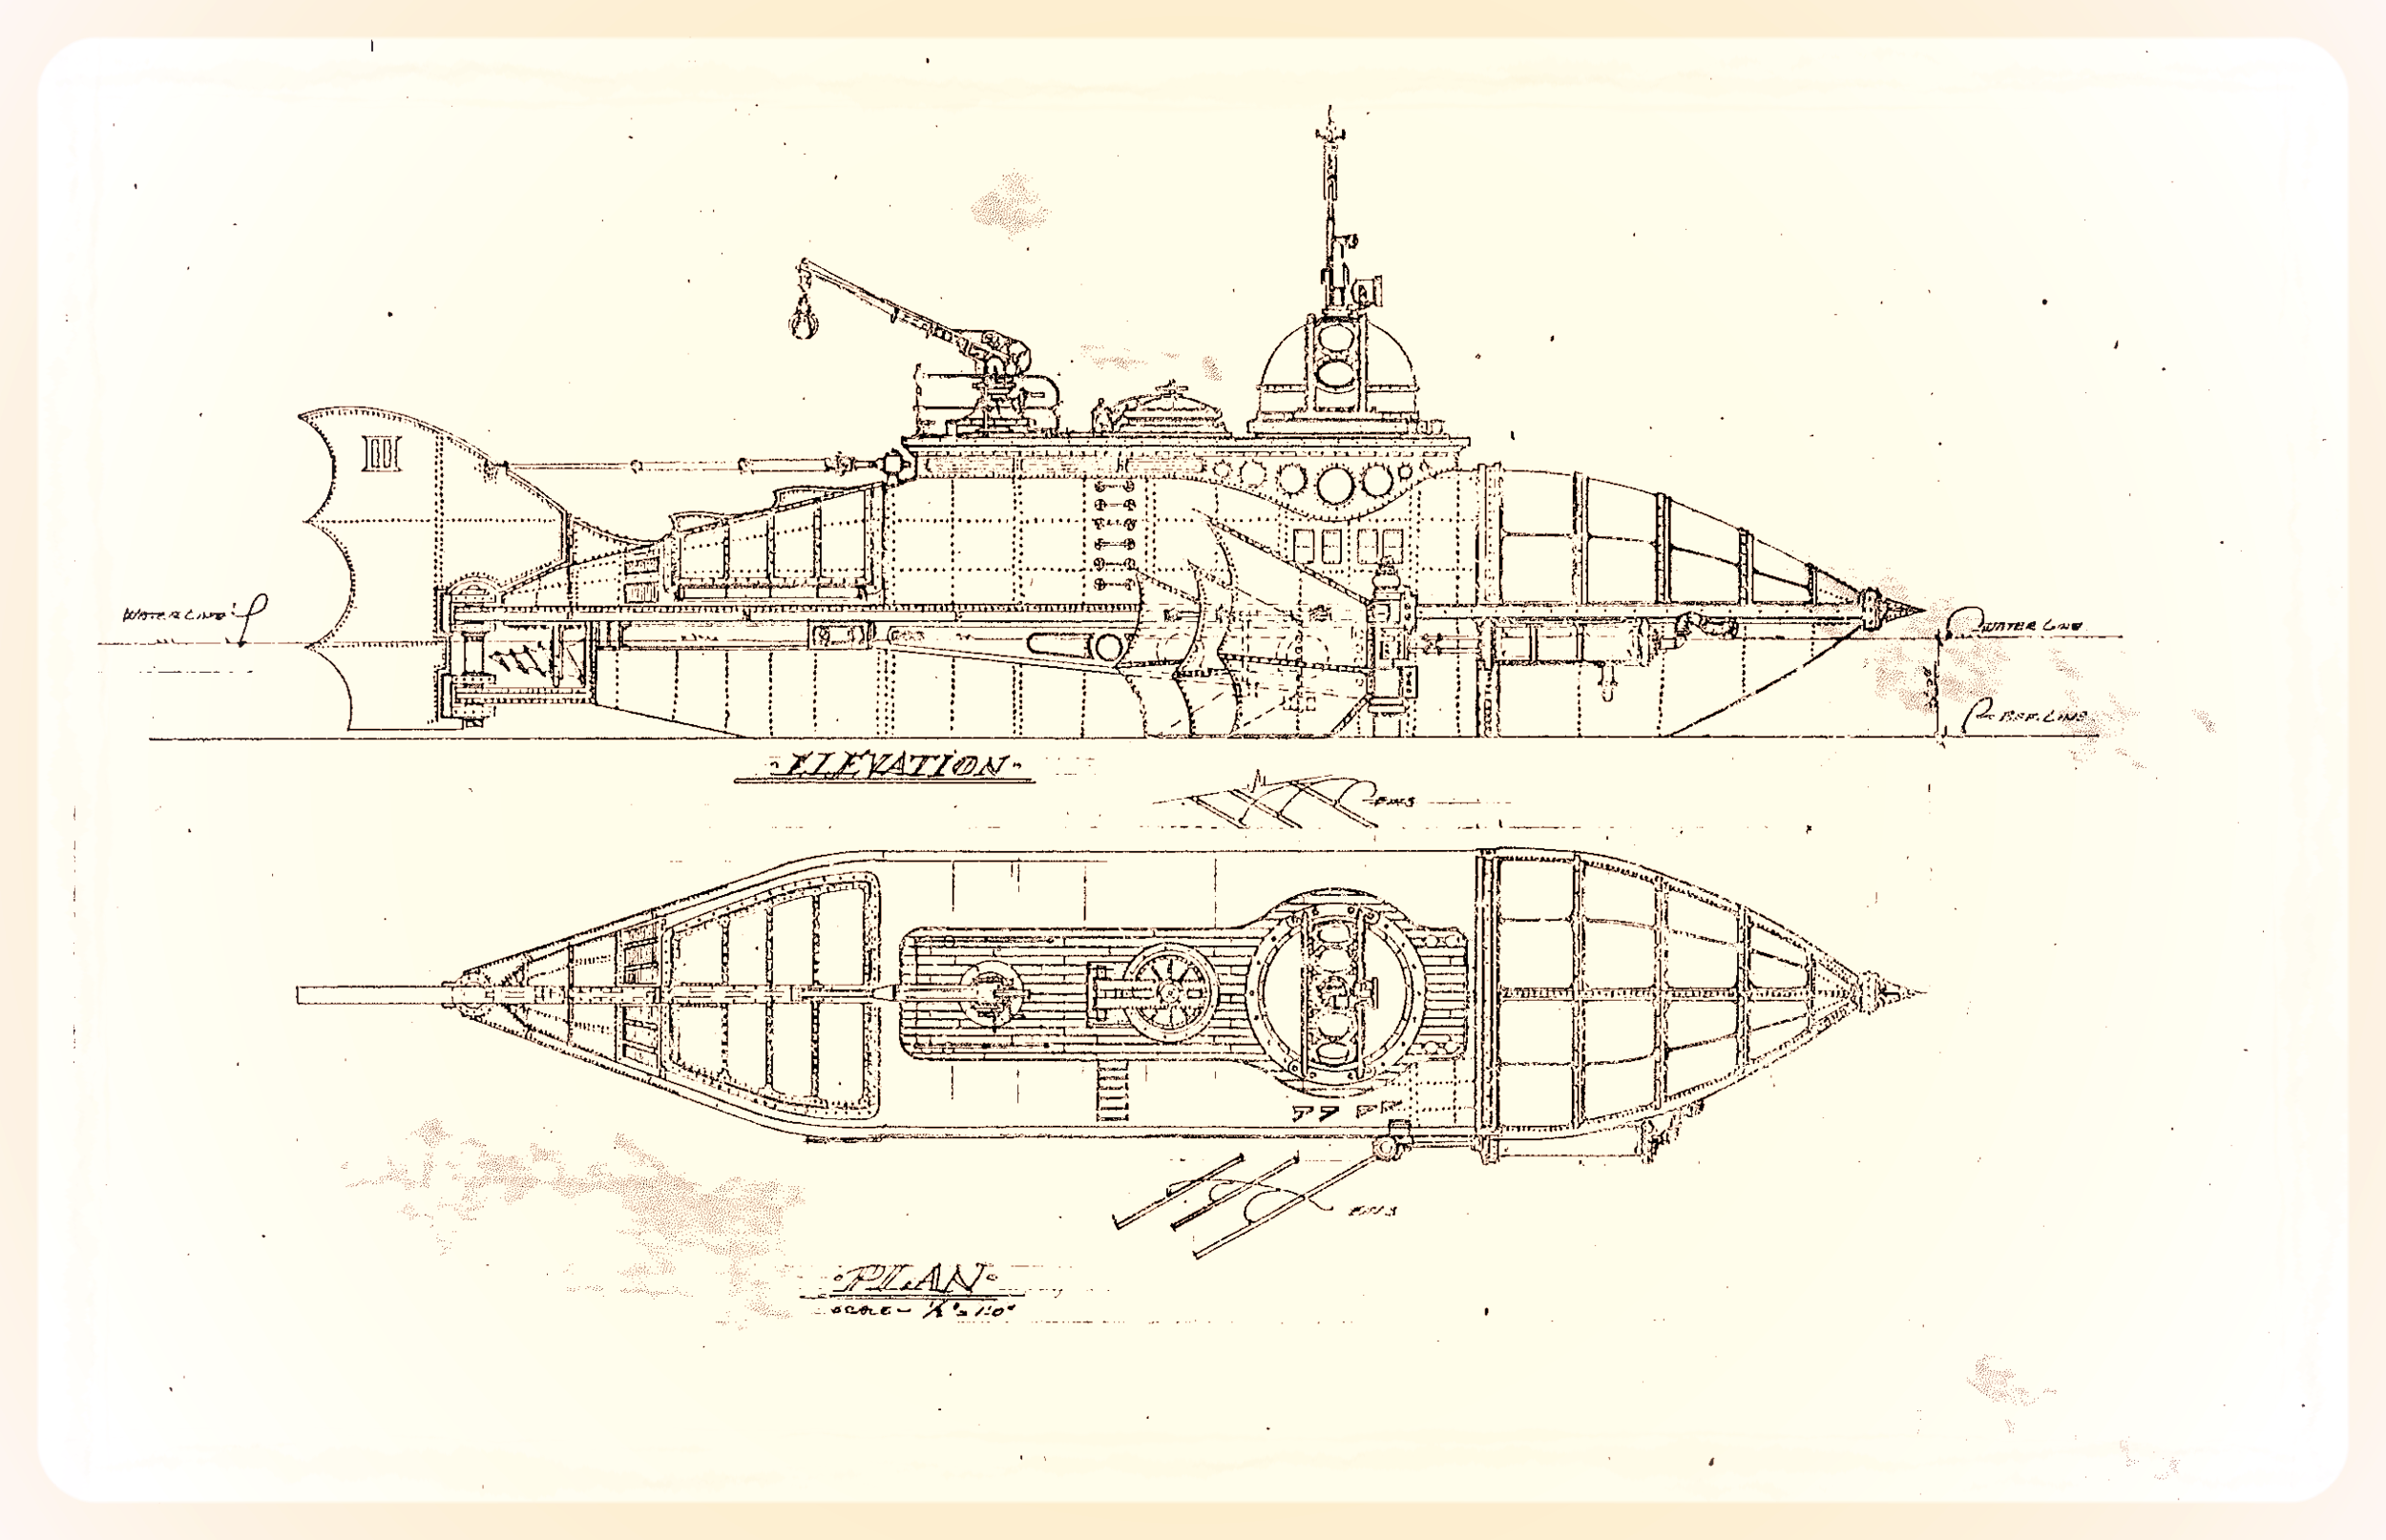 Ed Sotto's original design drawing.